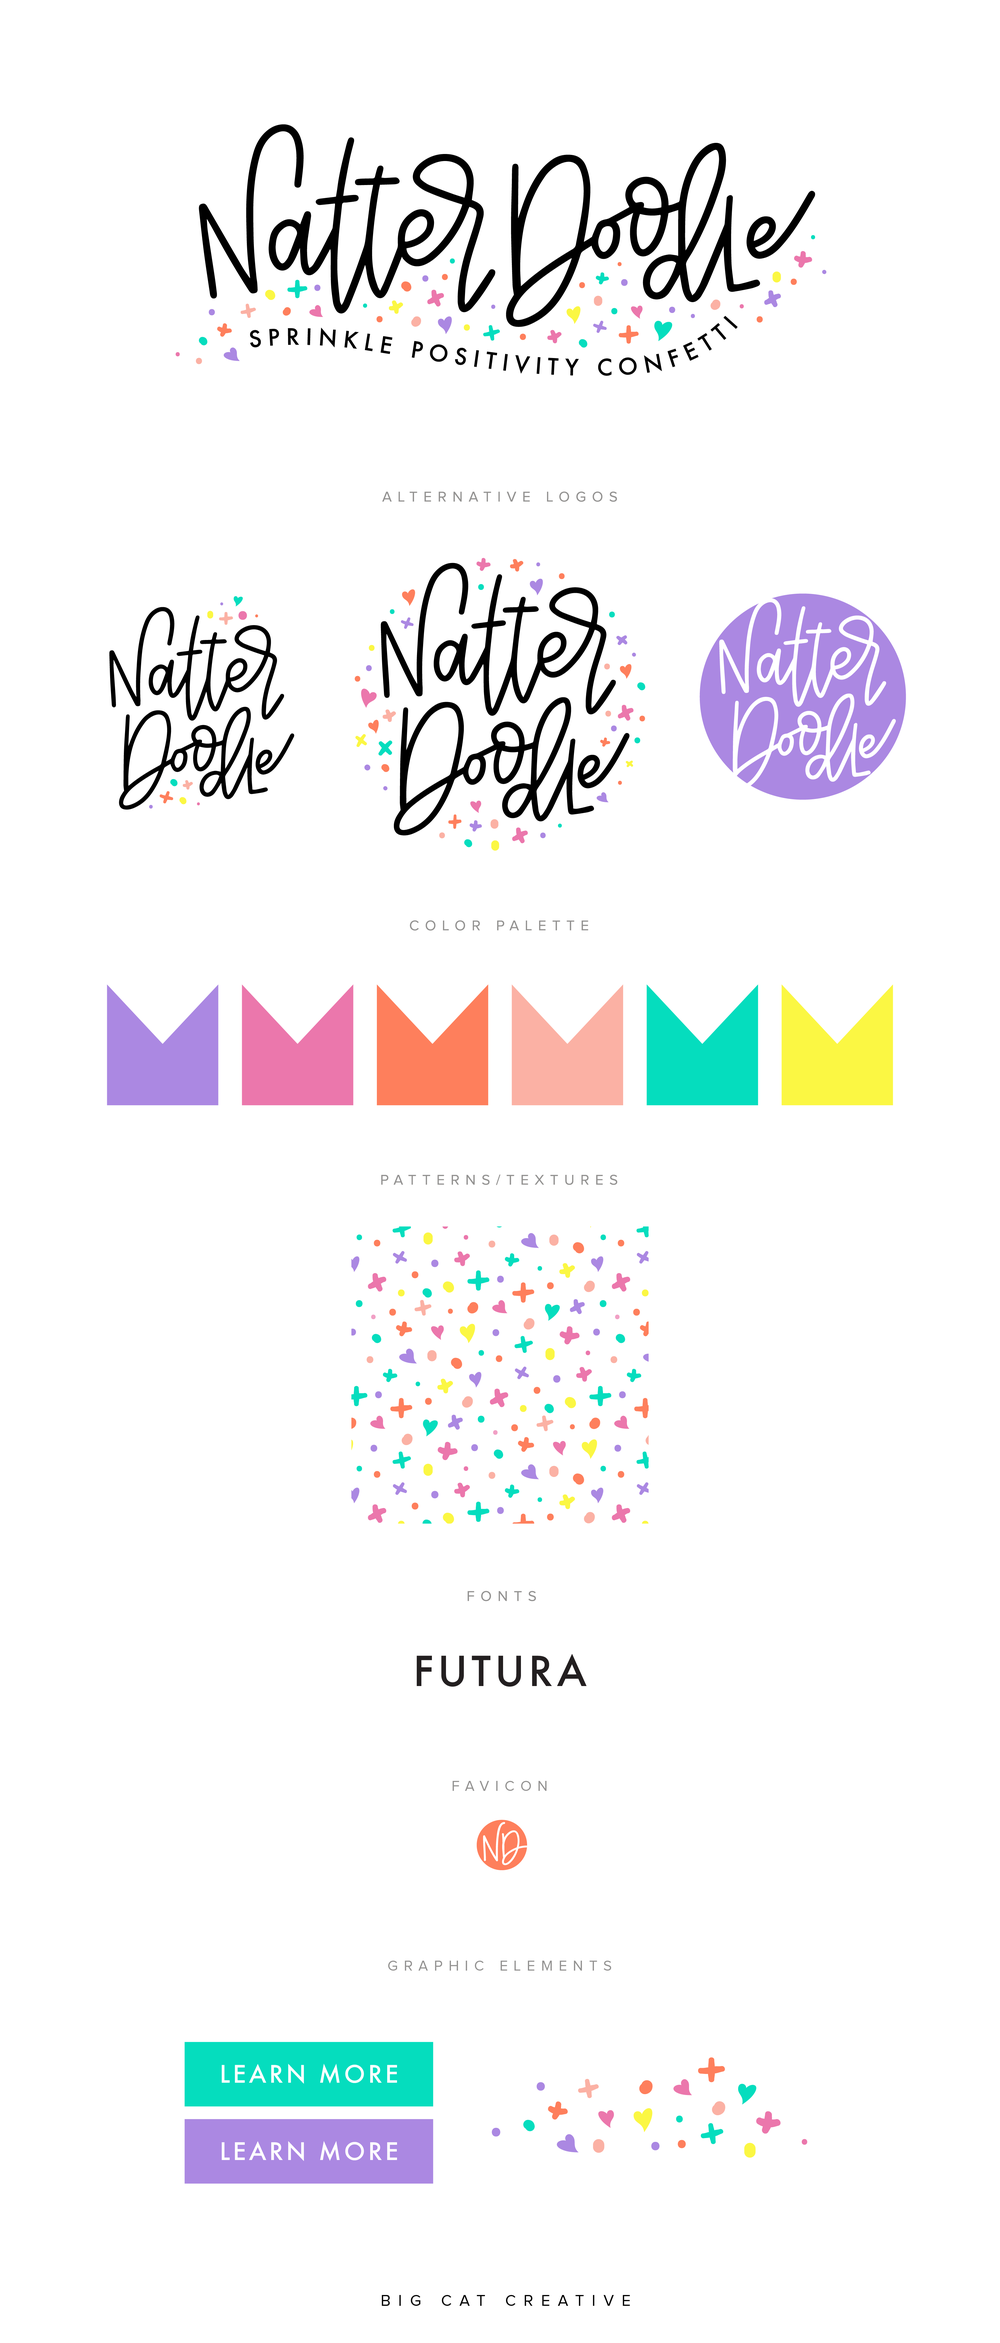 Natterdoodle Brand and Shopify Website Design by Big Cat Creative